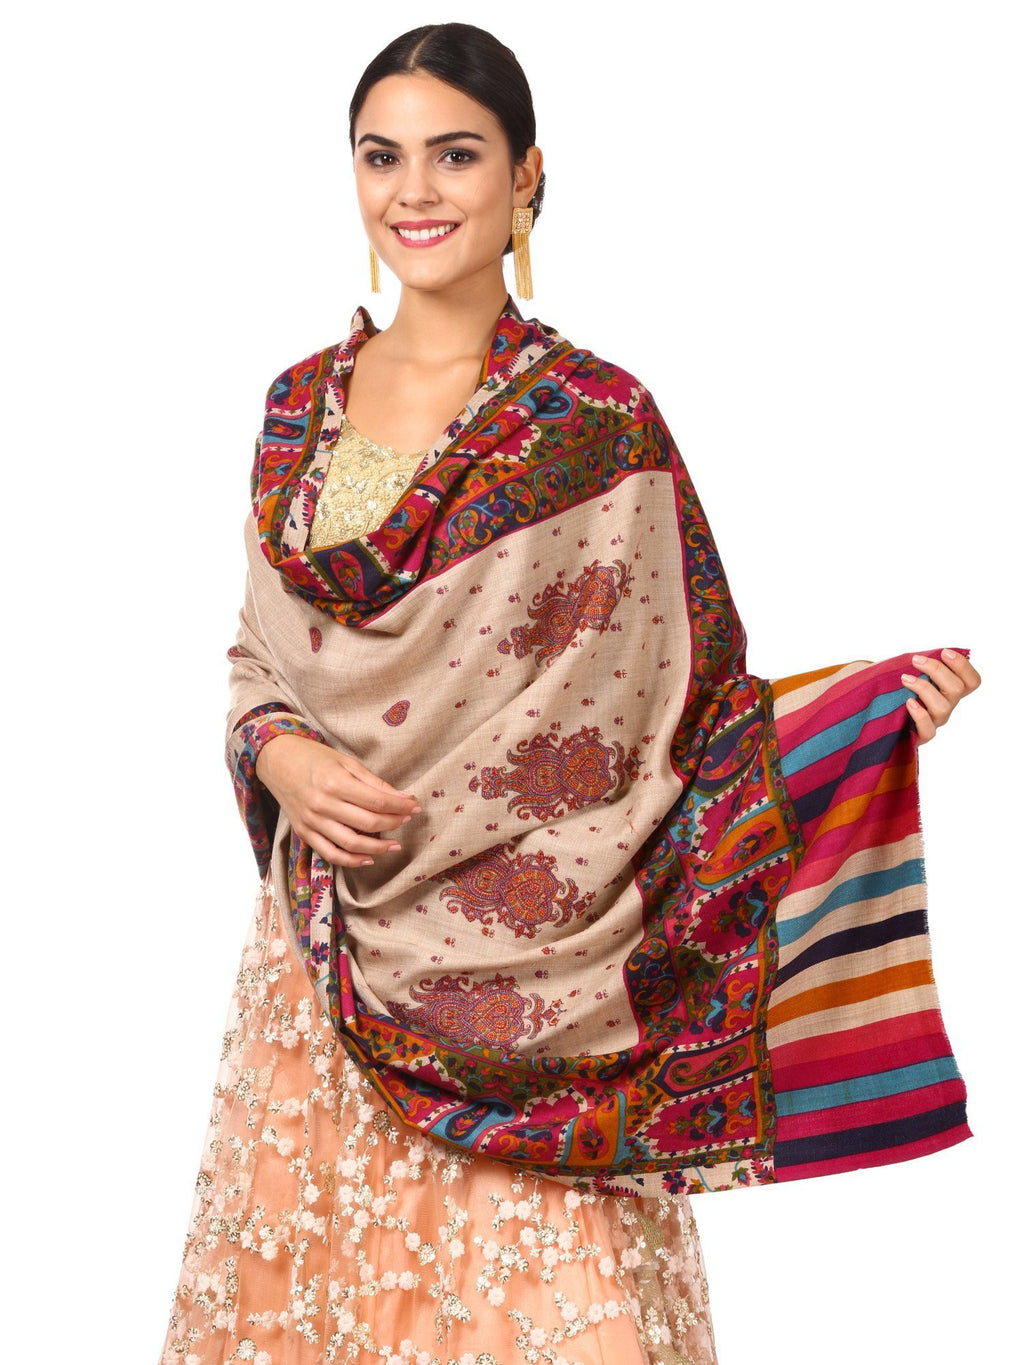 Pashtush Shawl Store Shawl Womens Kalamkari Shawl, Wedding Collection, Thick and Warm